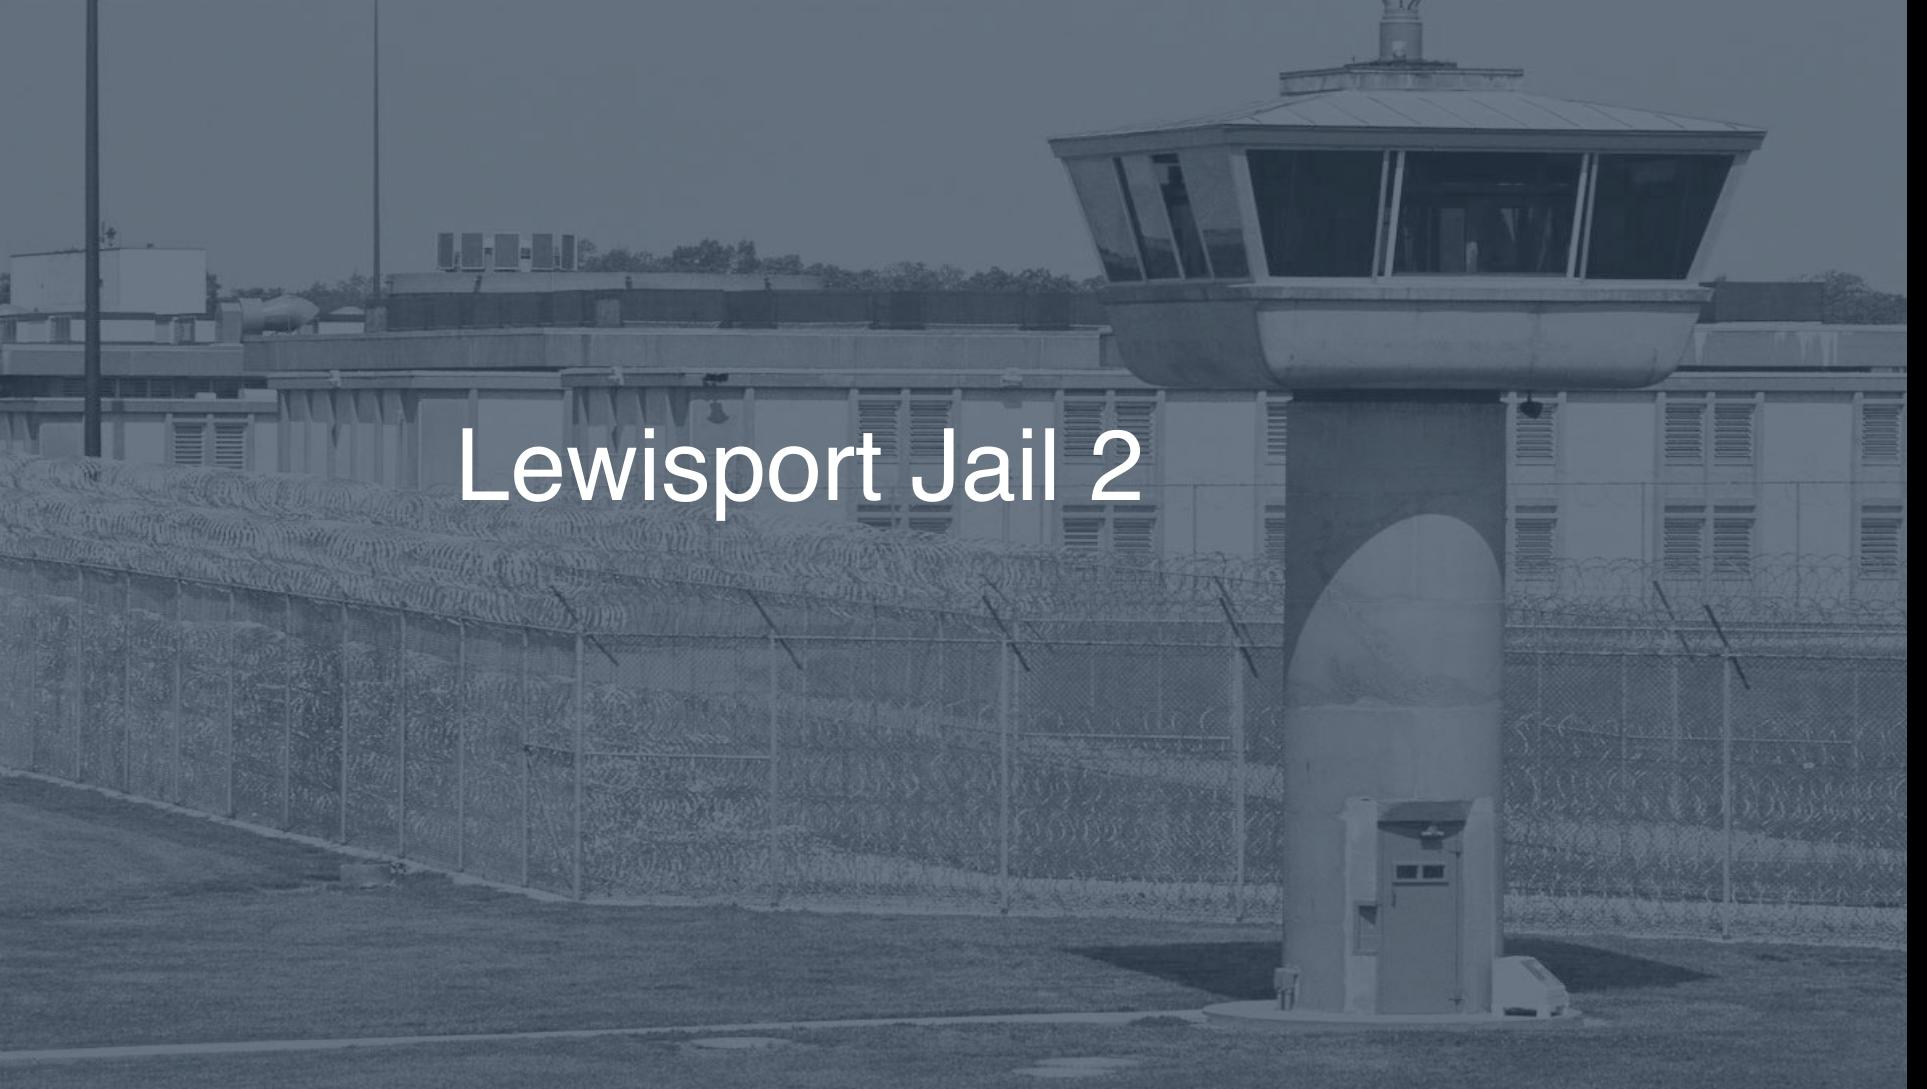 Lewisport Jail correctional facility picture